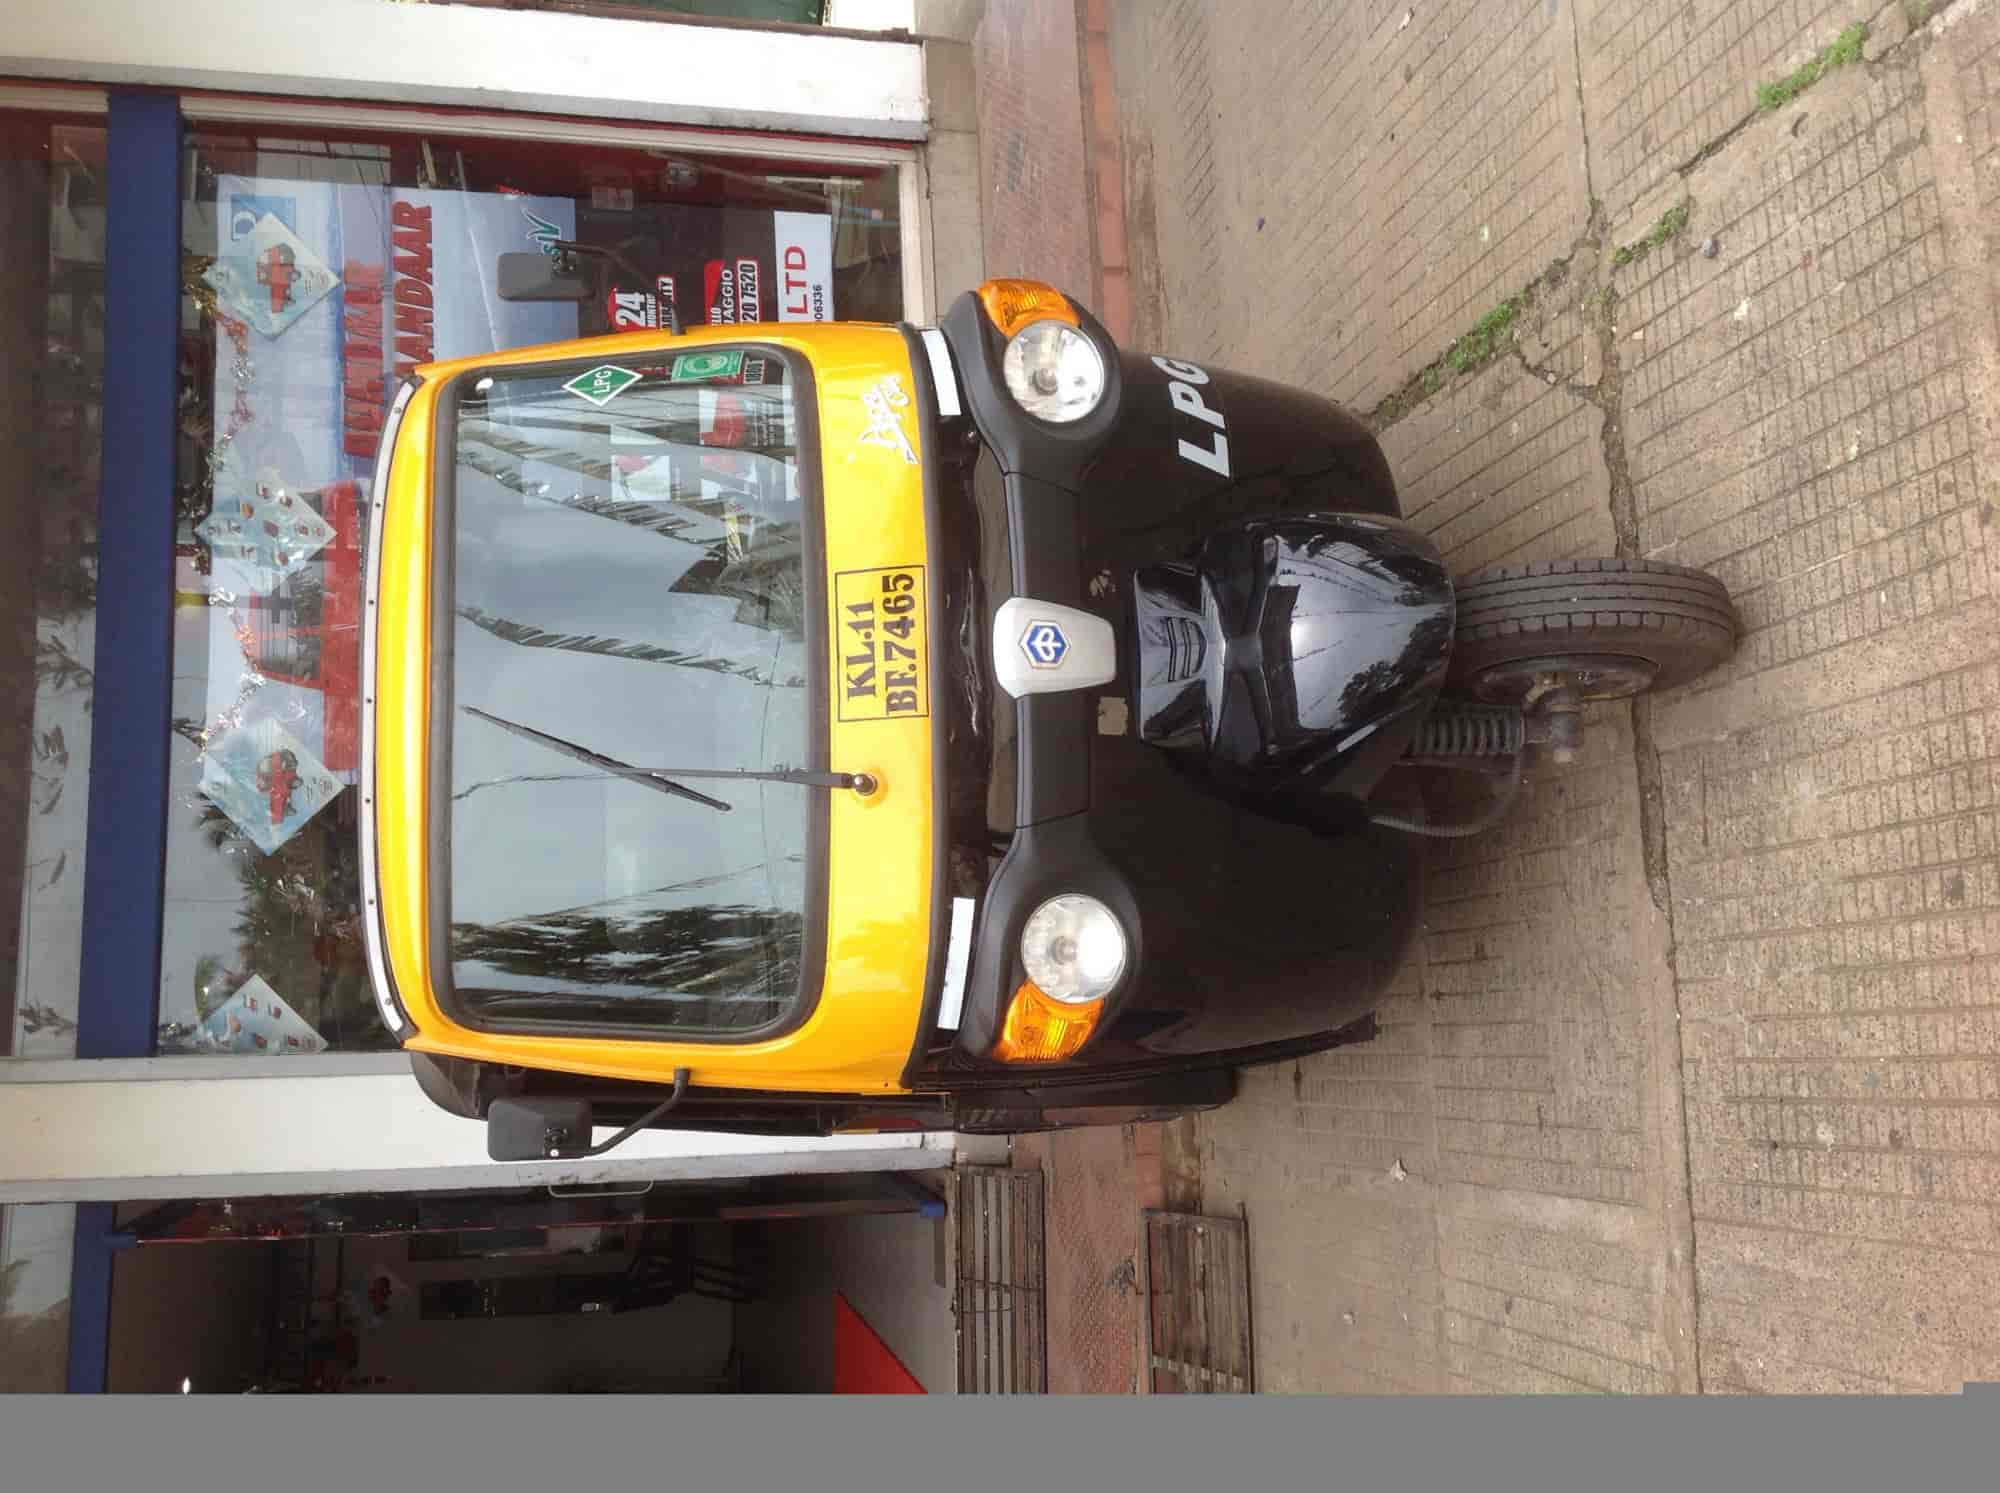 ACE Motors PVT LTD, West Hill - Auto Rickshaw Dealers in KOZHIKODE - Justdial